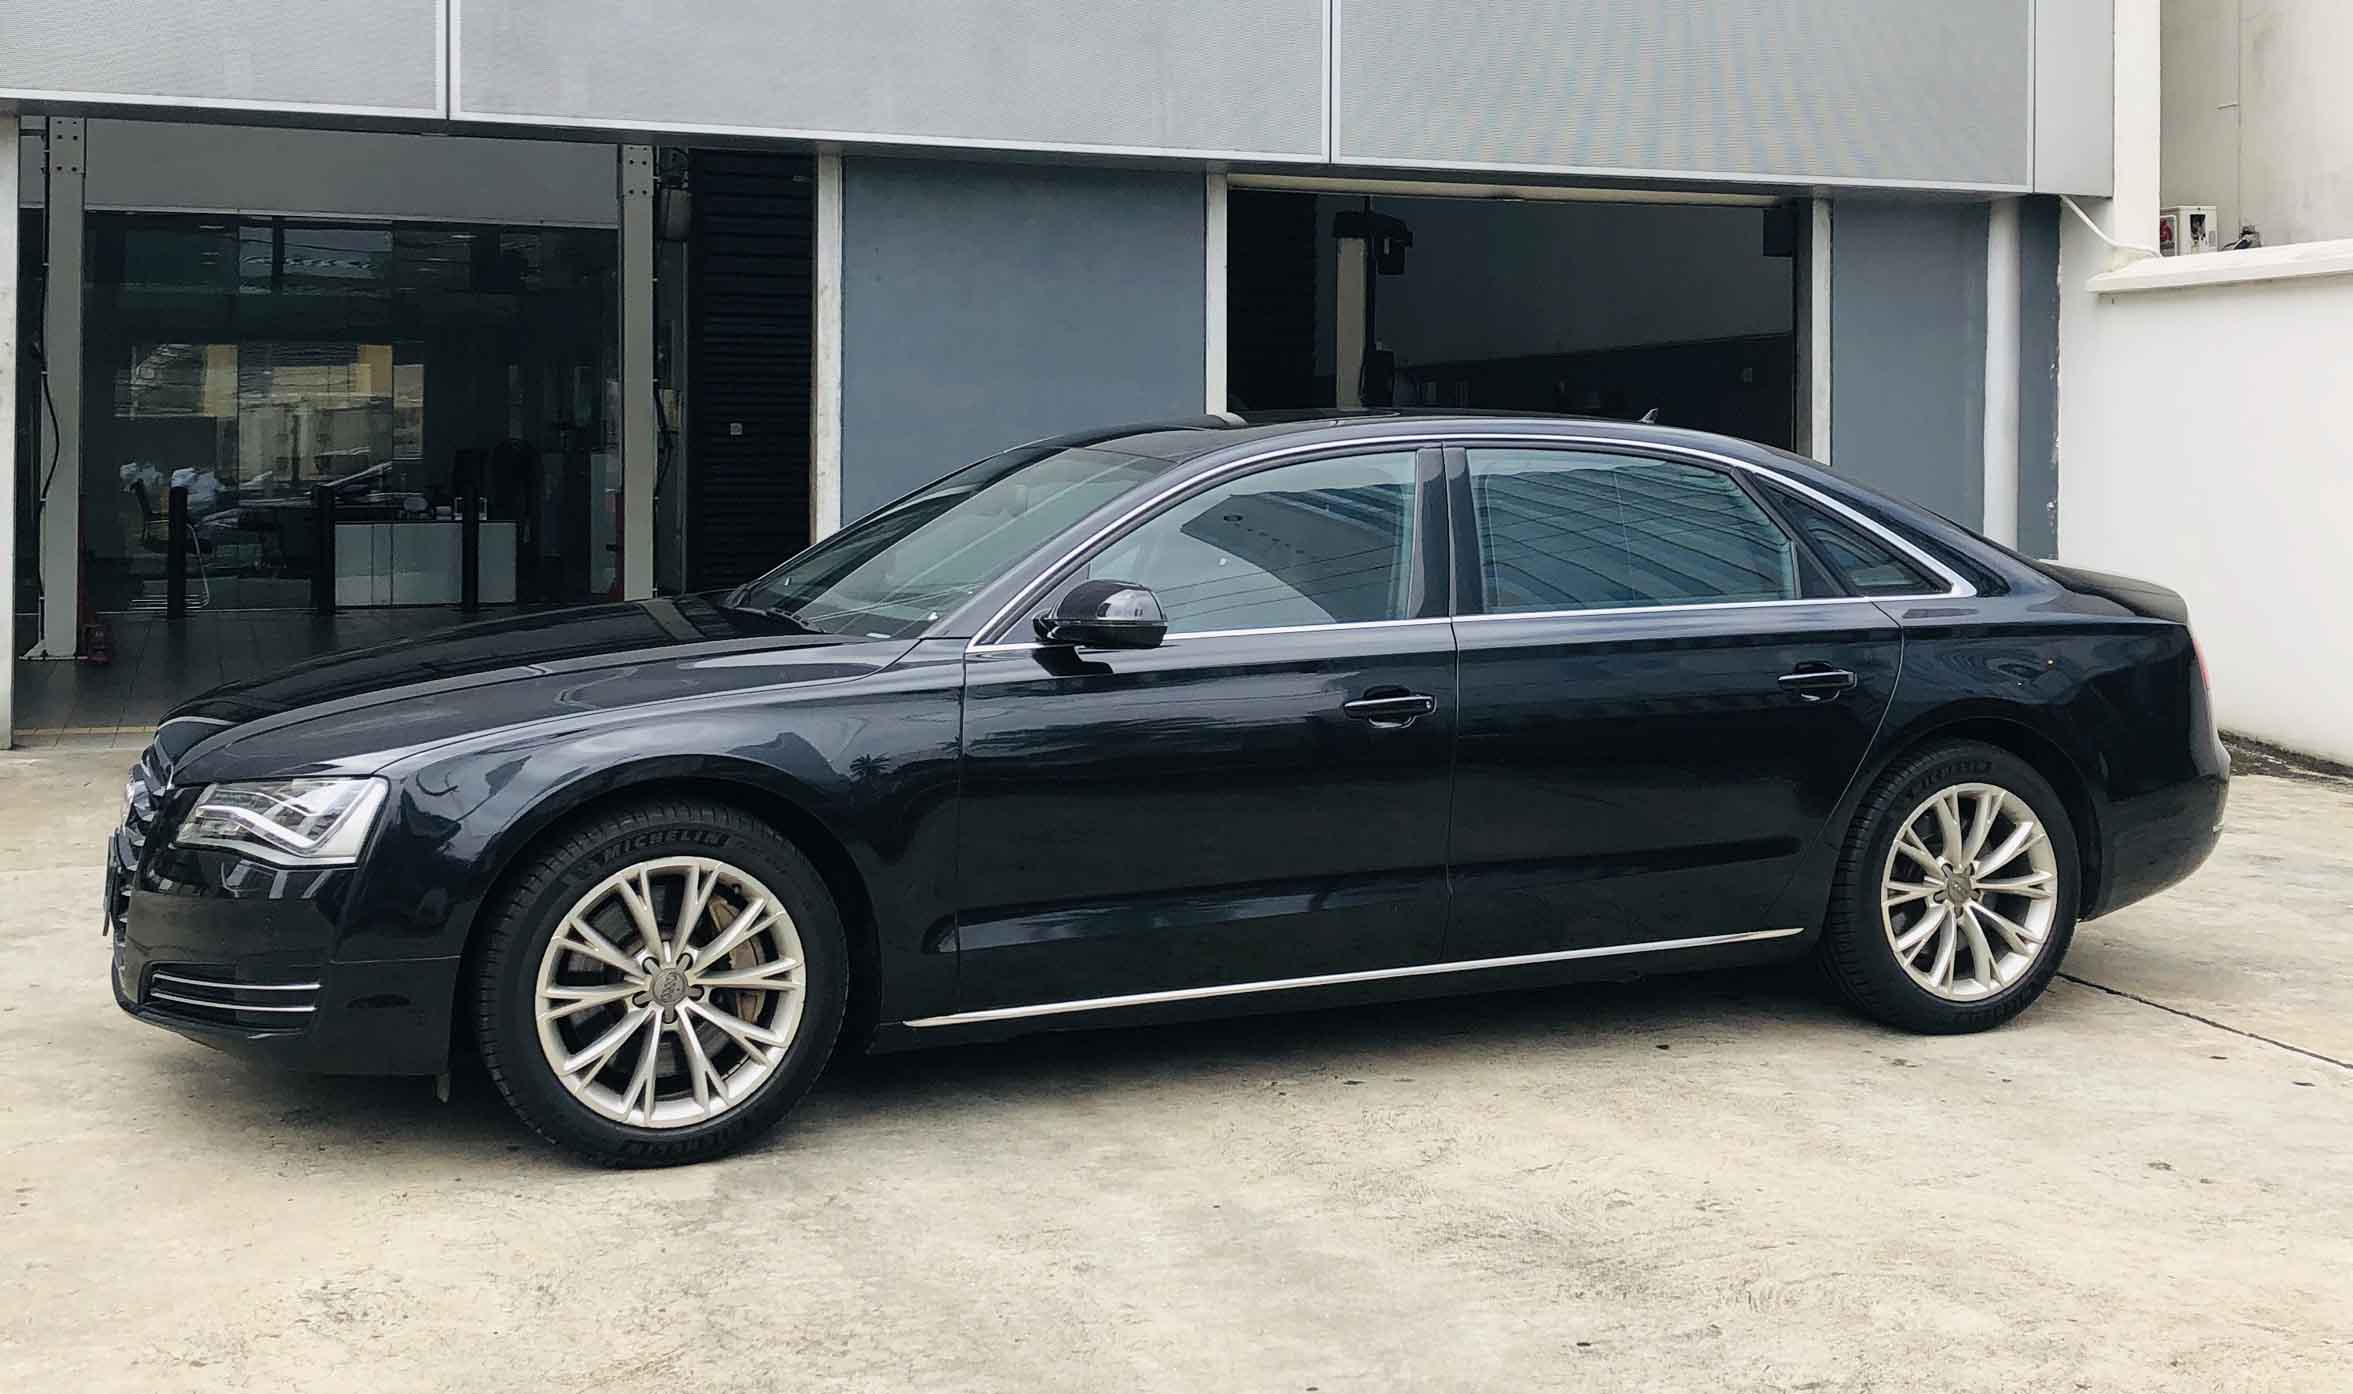 stallion approved - pre-owned audi 8 - side view